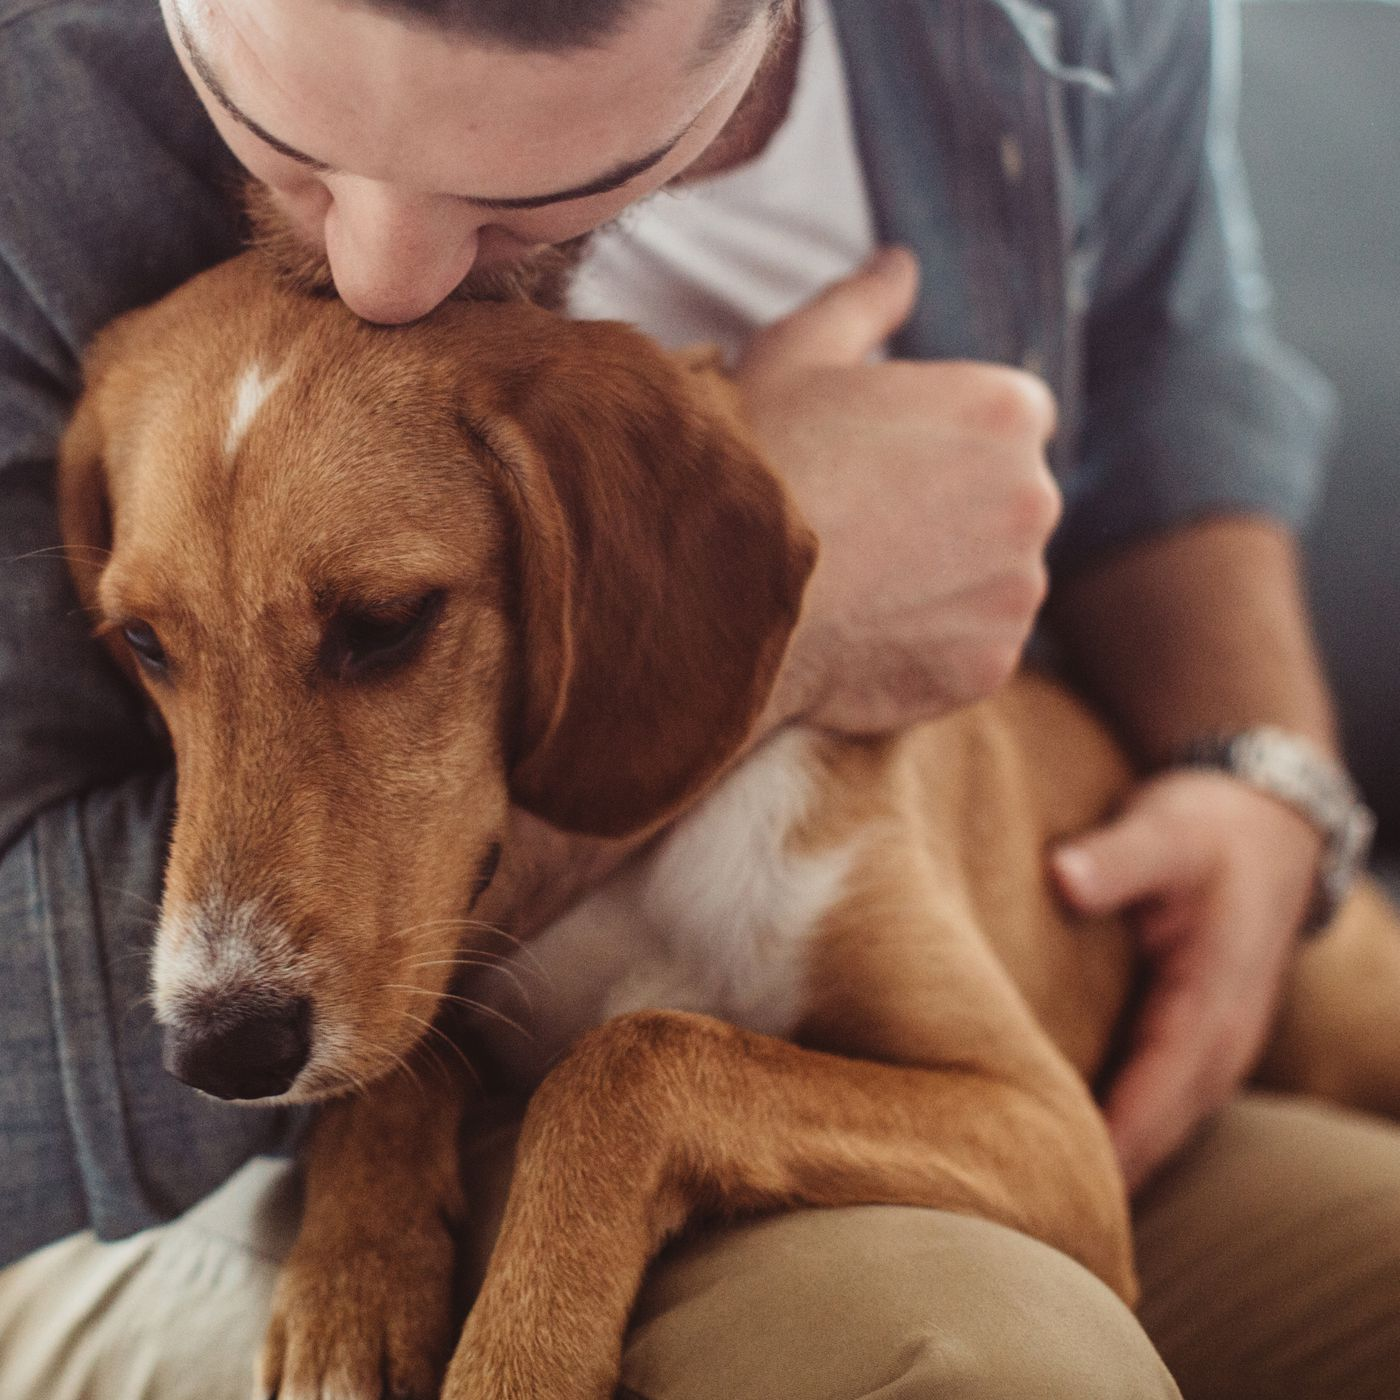 Emotional support animals: there's surprisingly weak